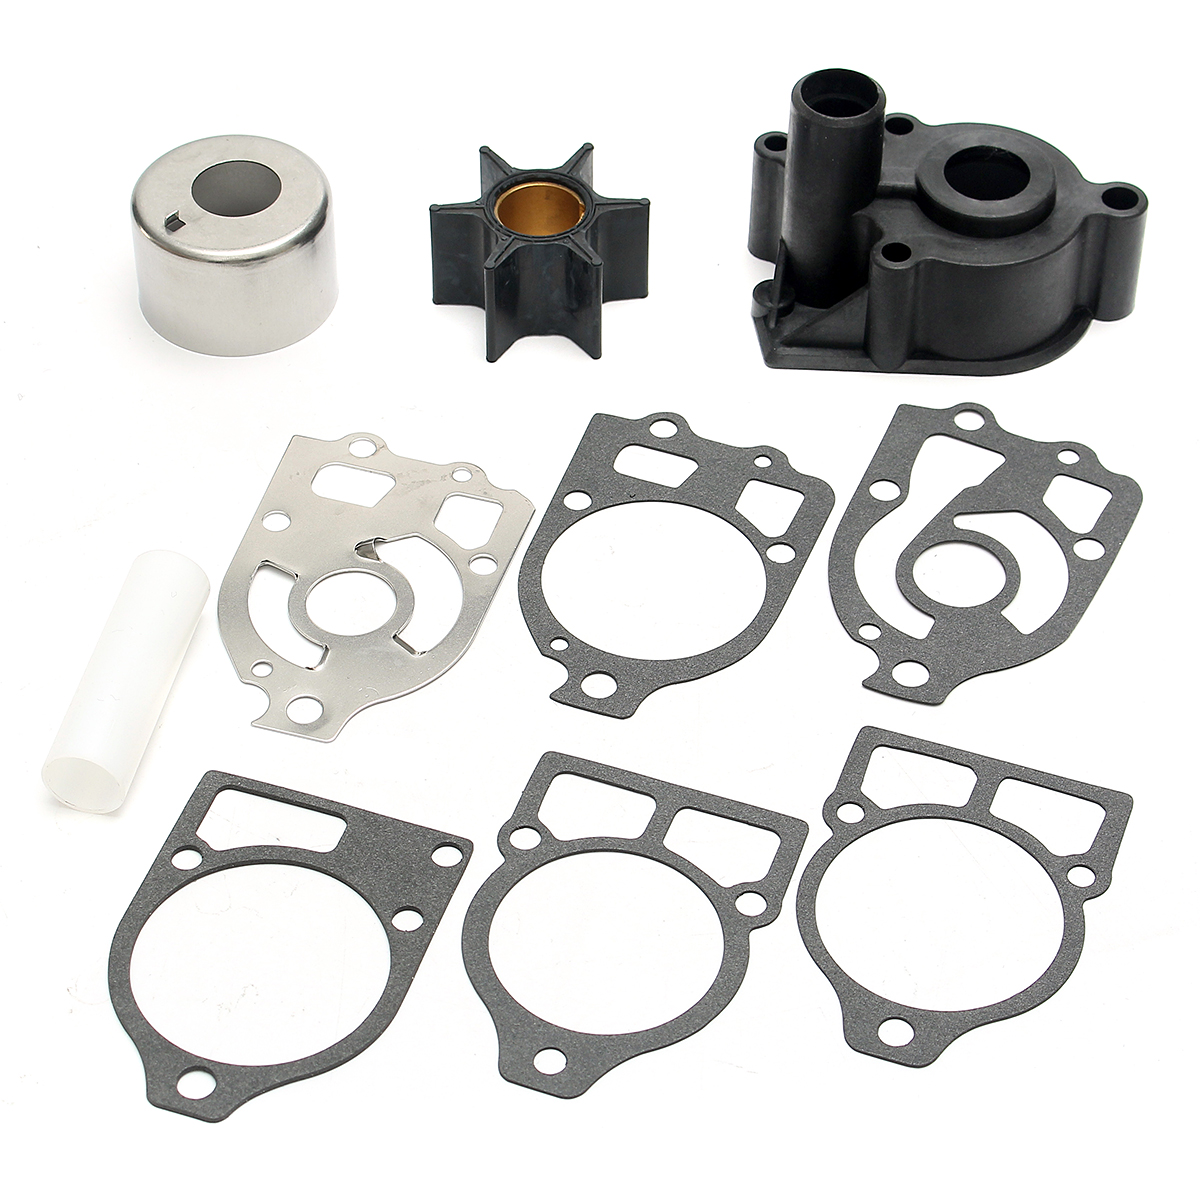 Mariner Water Pump Impeller Repair Kit For Mercury Mercruiser Alpha 1 46-96148T8